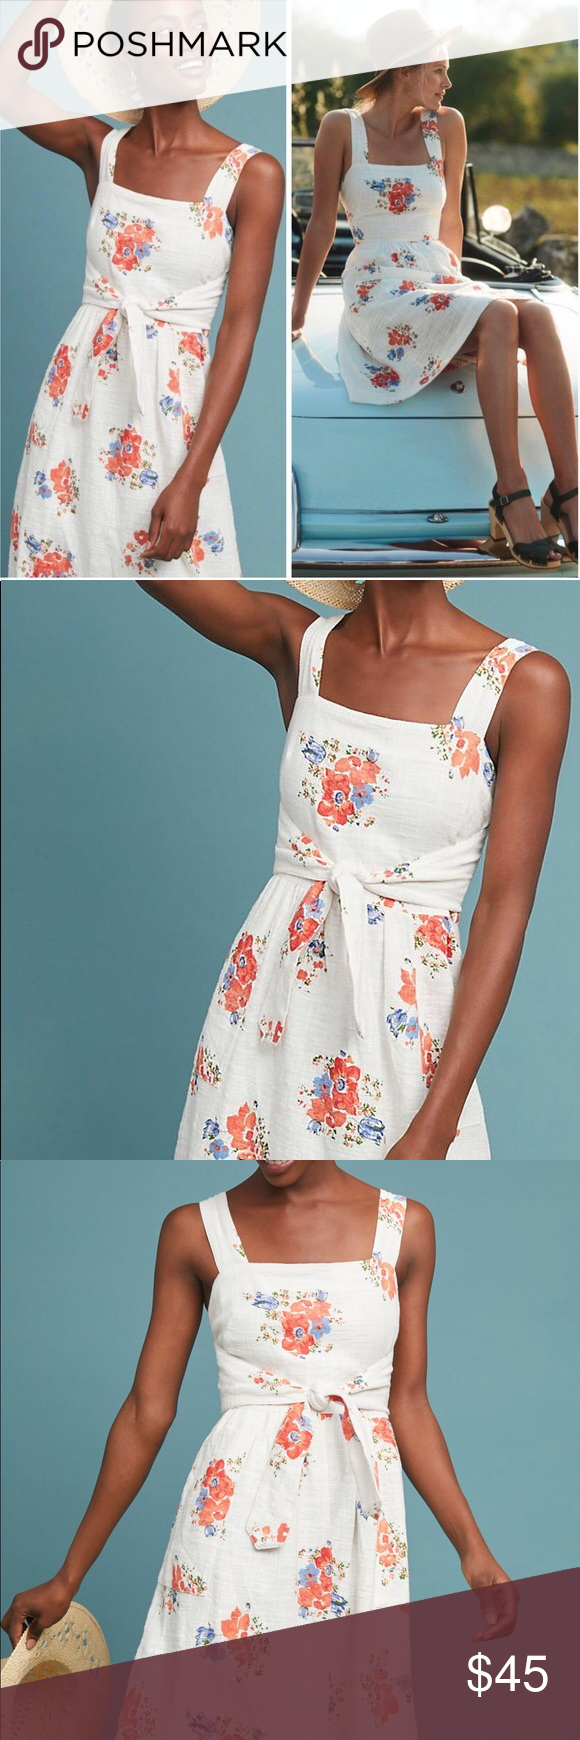 dc89ca6aa69c Anthropologie Ingalls Floral Apron Dress Anthropologie Ingalls Tie-Waist  White Floral A-Line Sleeveless